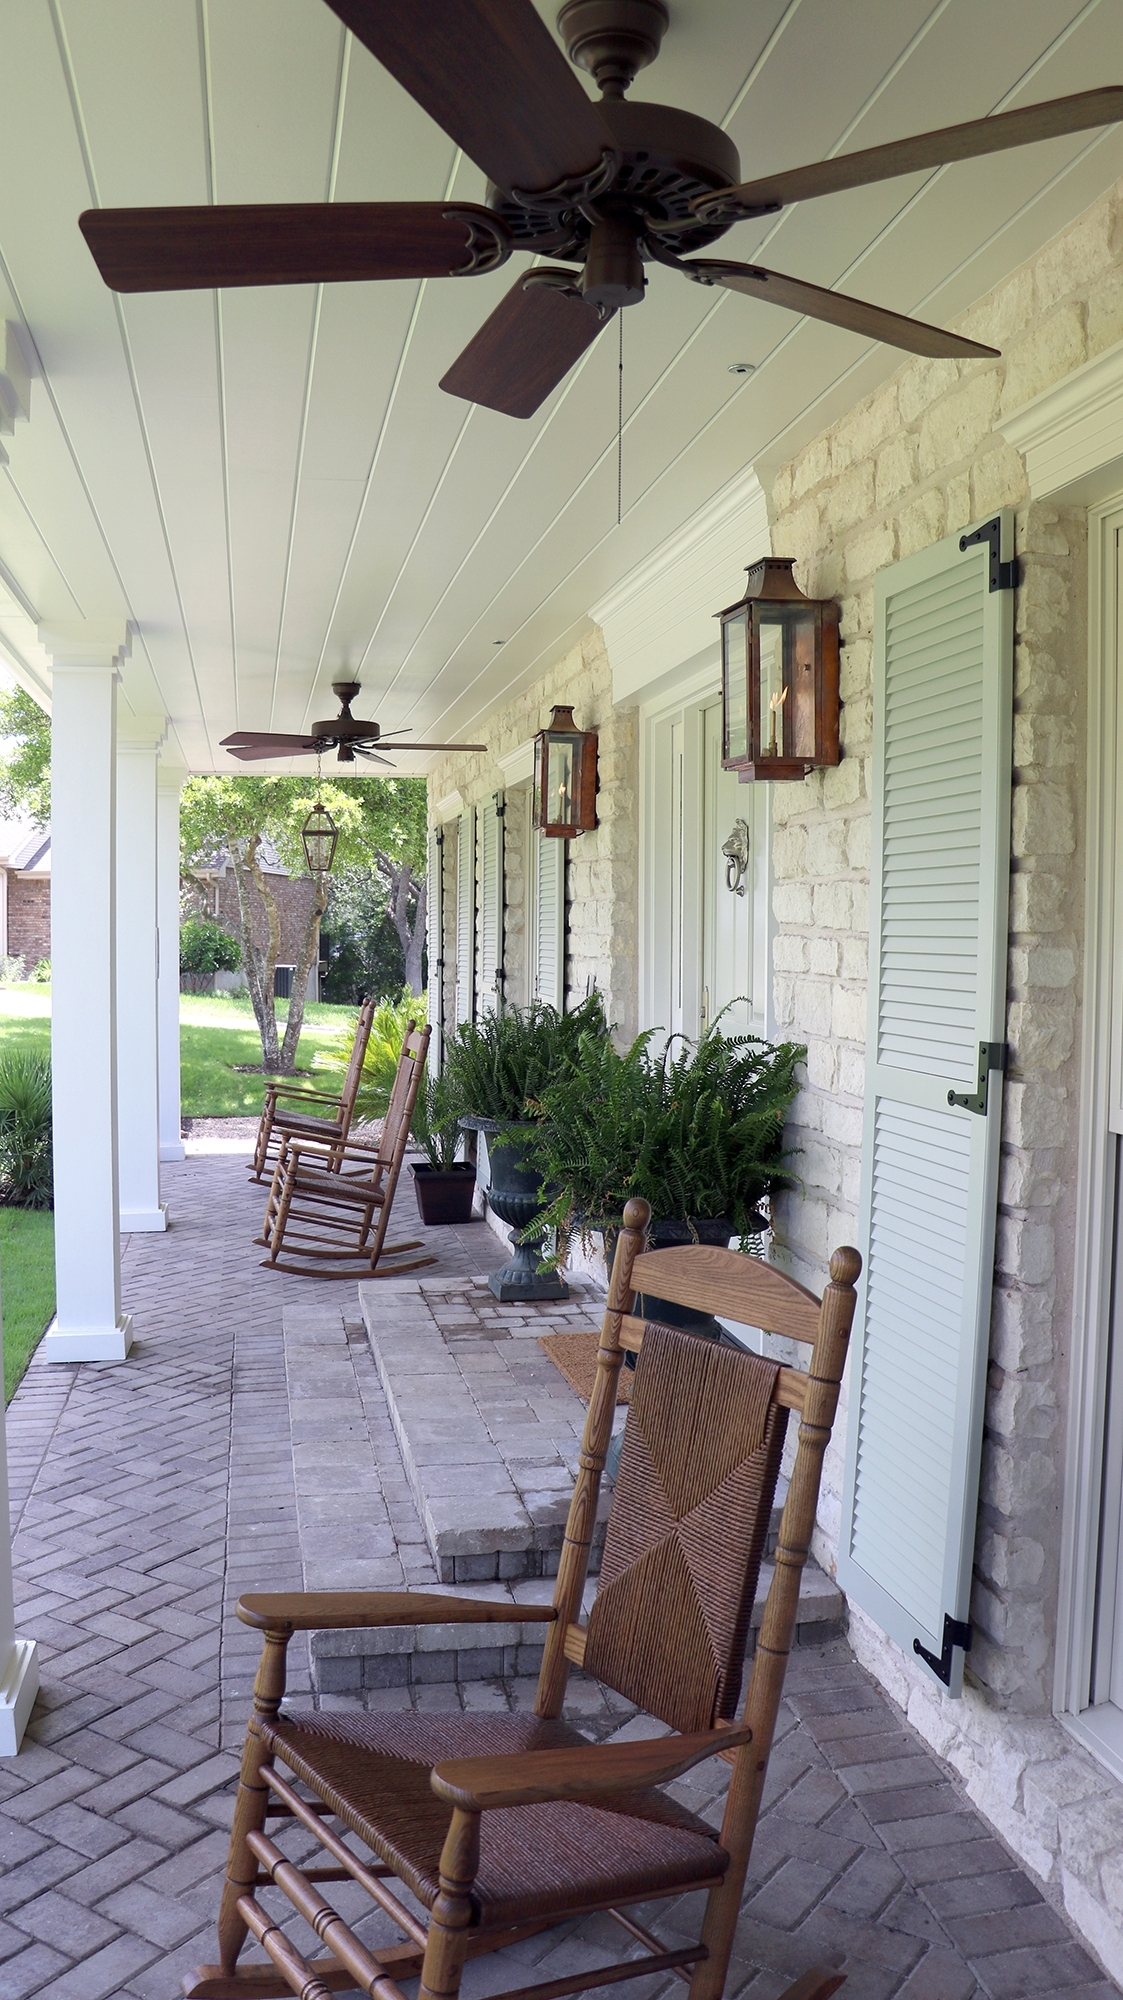 Outdoor Ceiling Fans For Porch Within Most Up To Date Front Porch 4 Hunter Original Outdoor Ceiling Fan – Hunter Fan Blog (View 20 of 20)